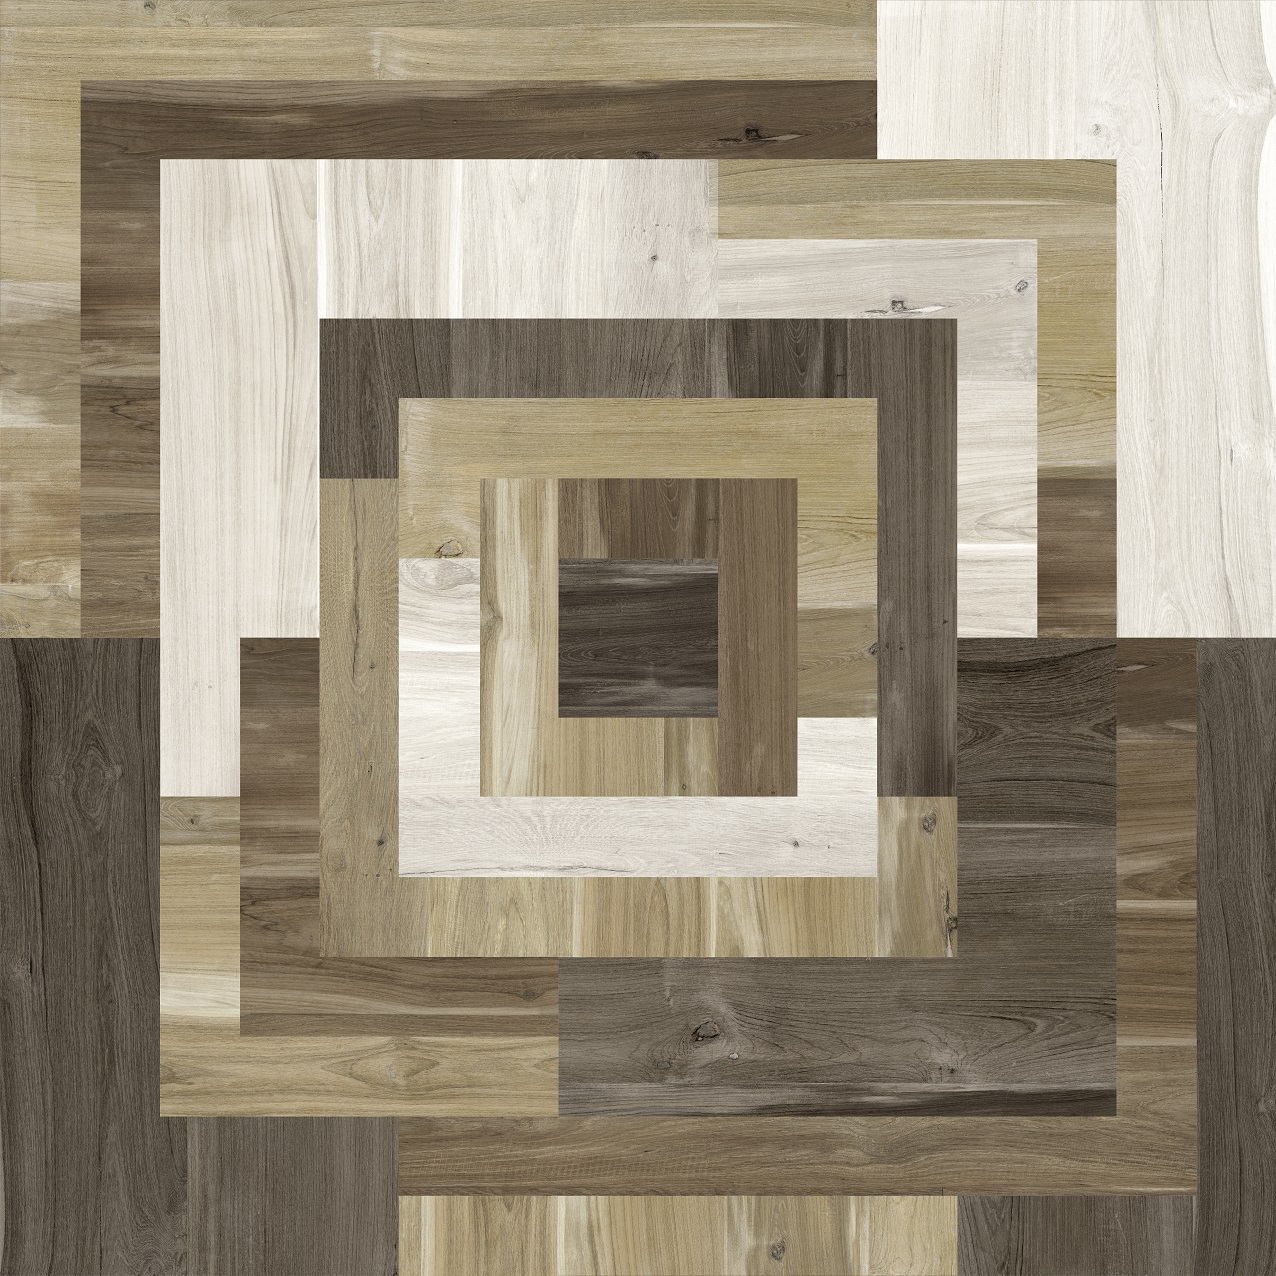 FLOSO - Decor (Metric) - 50x50.jpg